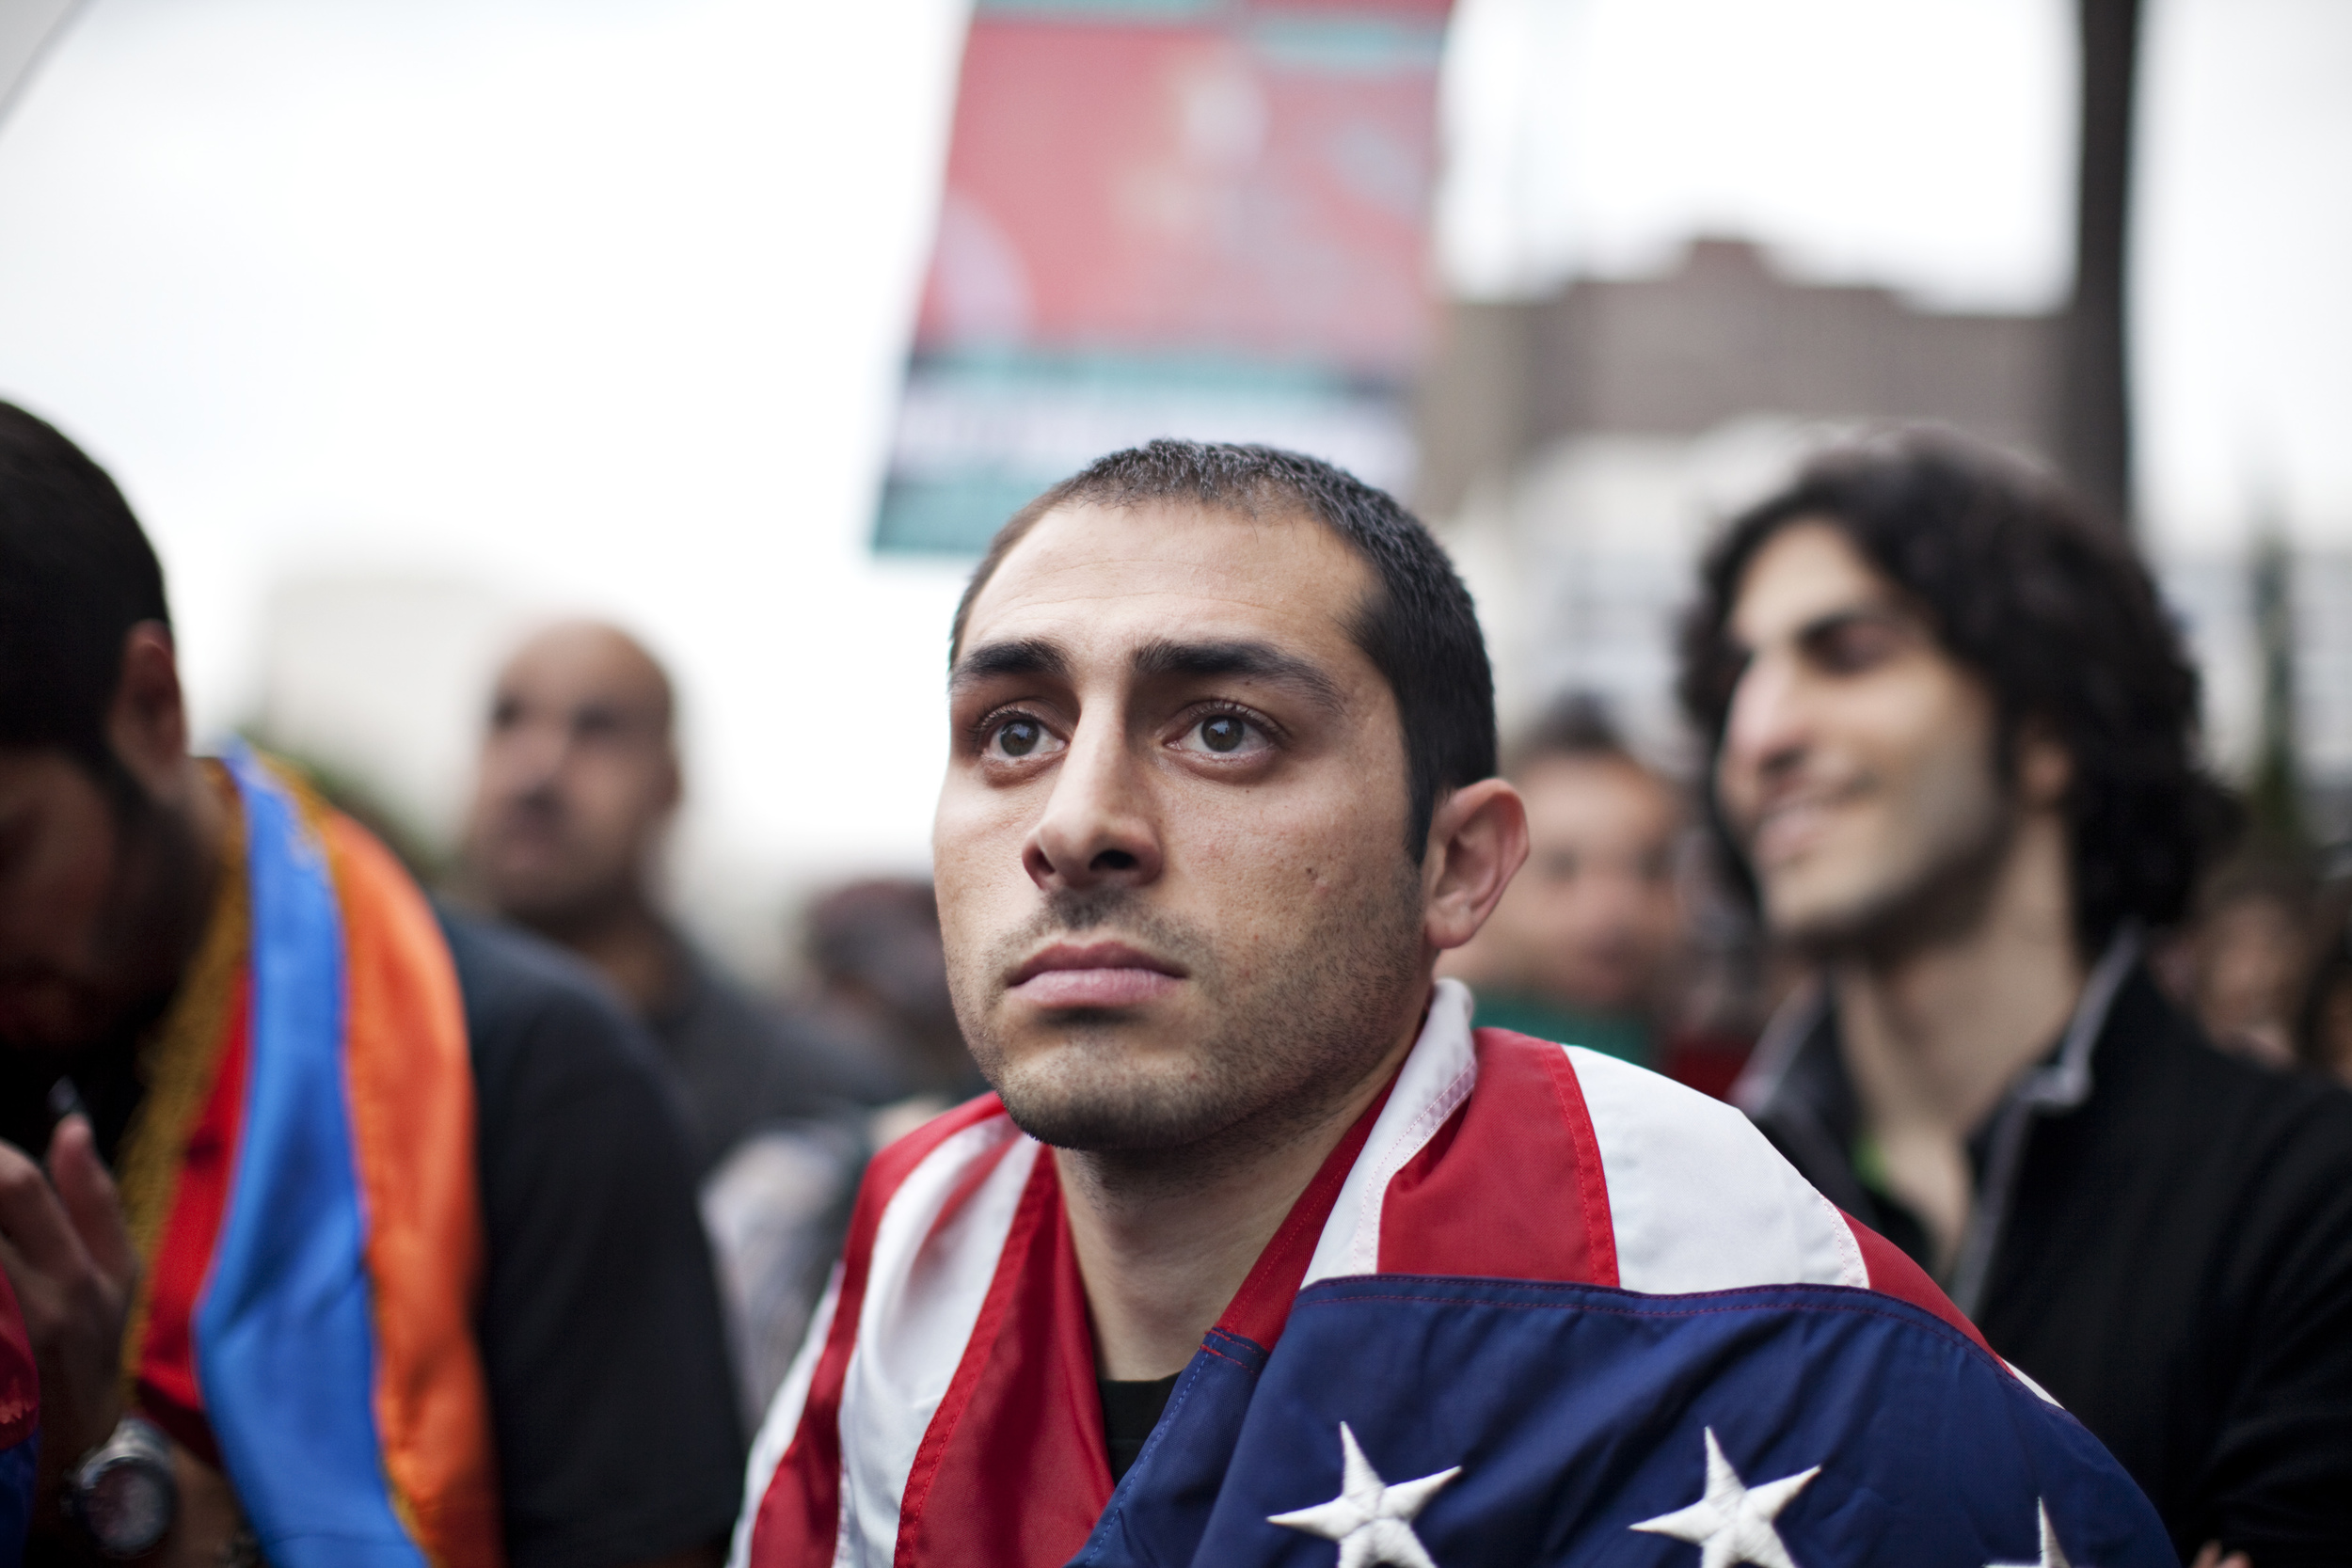 The following is aseriesfrom an April 24th commemoration, which took place in front of the Turkish consulate in Los Angeles.Turkey, the successor stateof the Ottoman Empire, has continuously denied the Genocide.